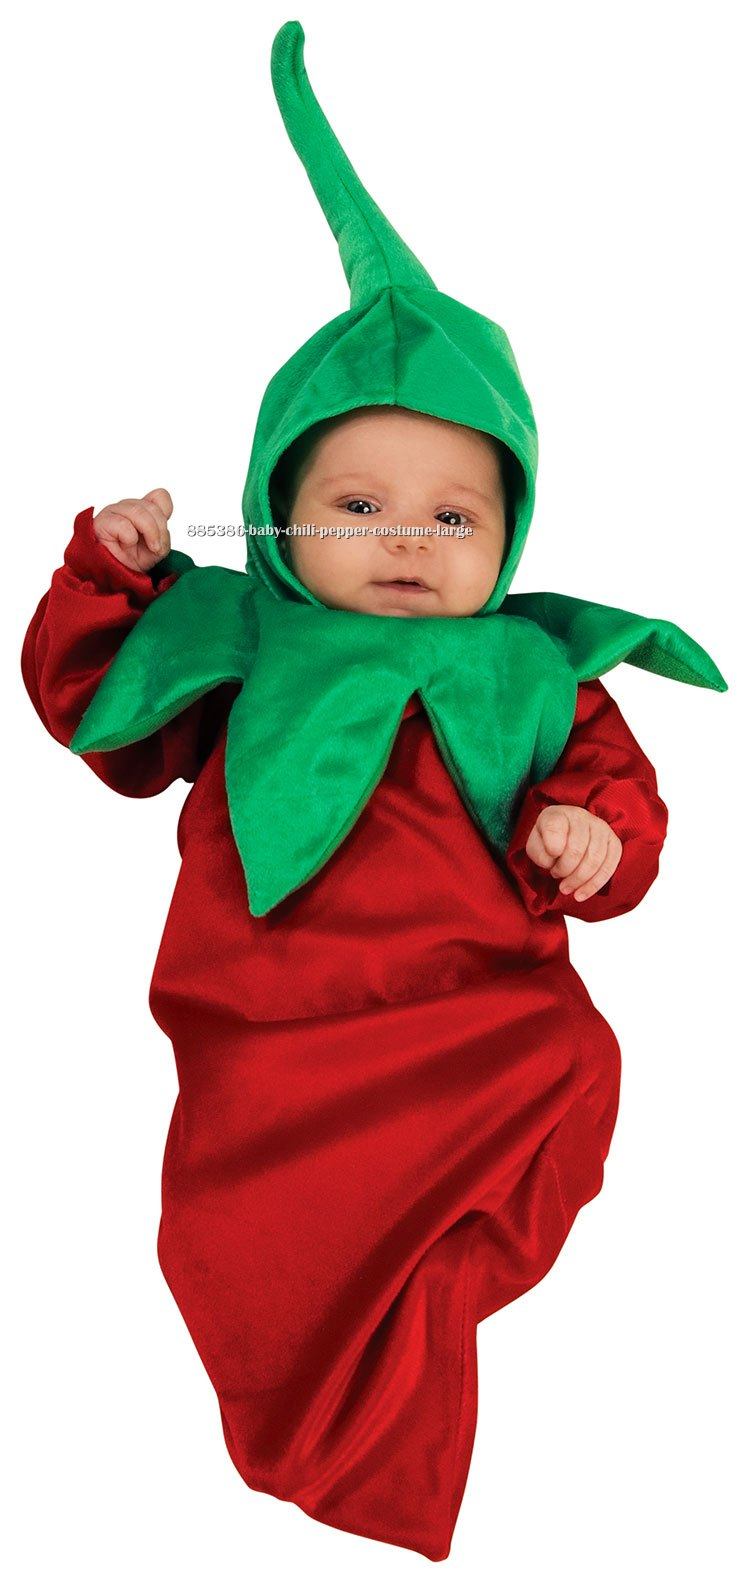 Baby Chili Pepper Costume